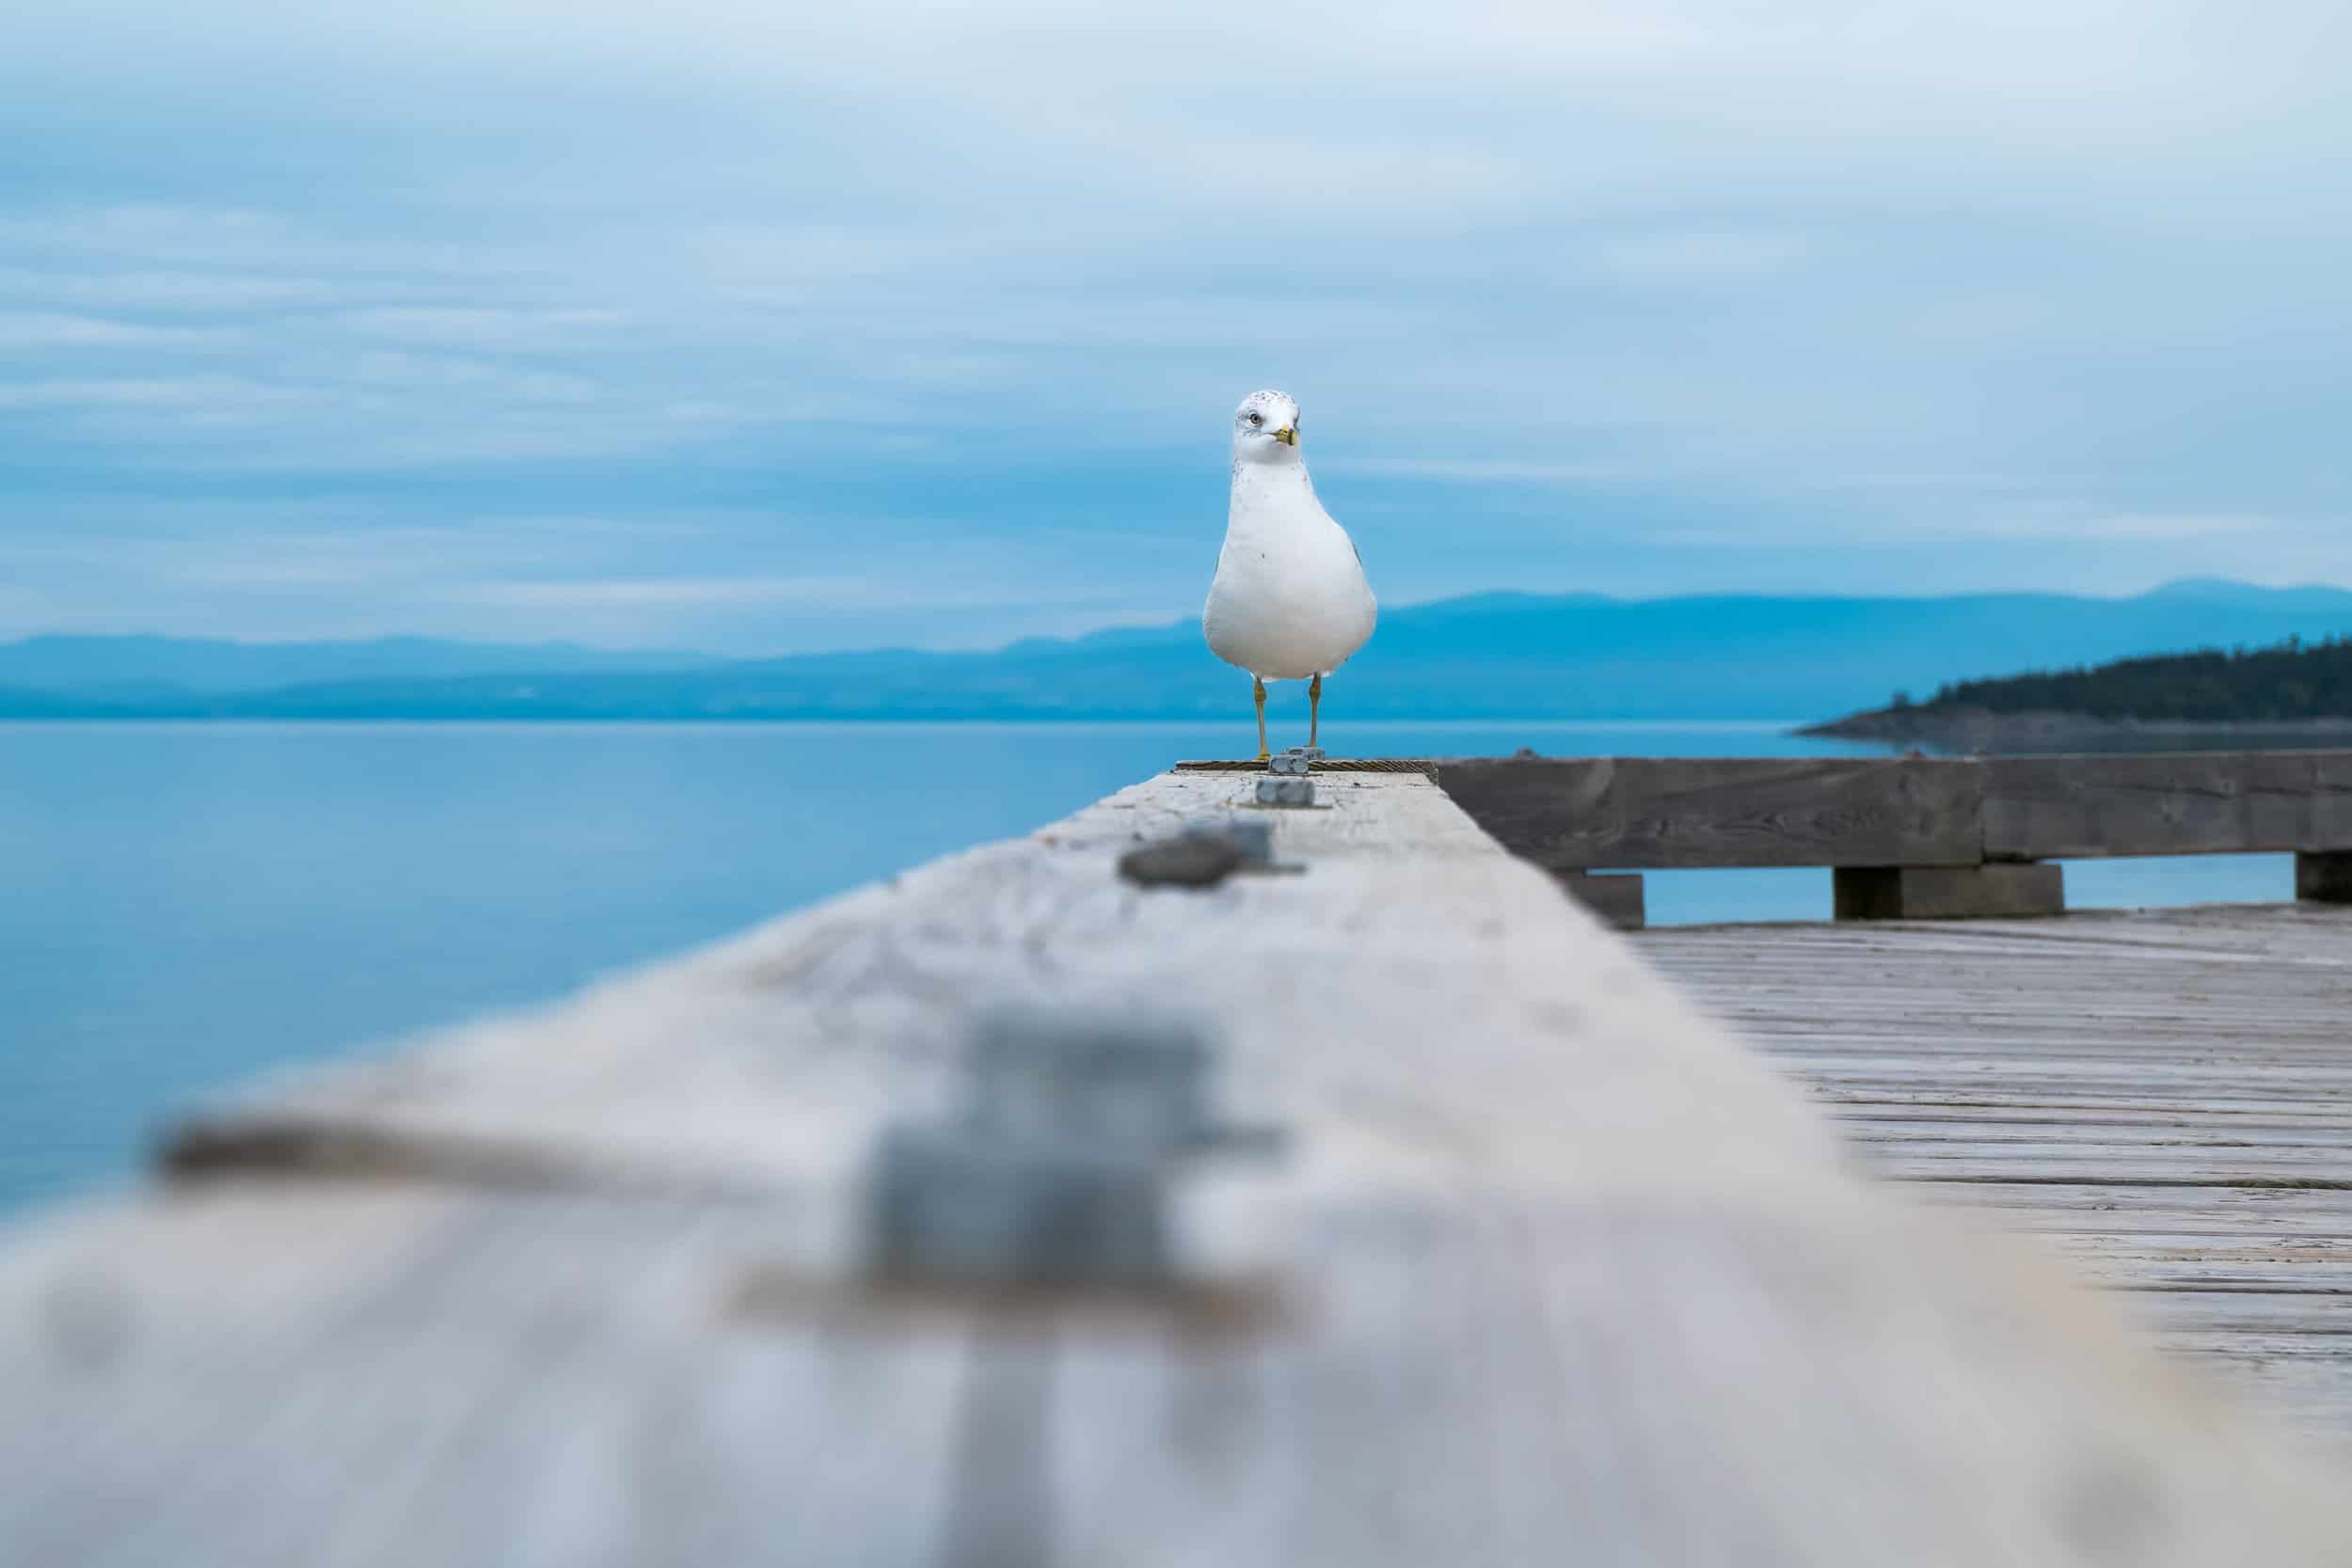 A seagull by the sea in canada